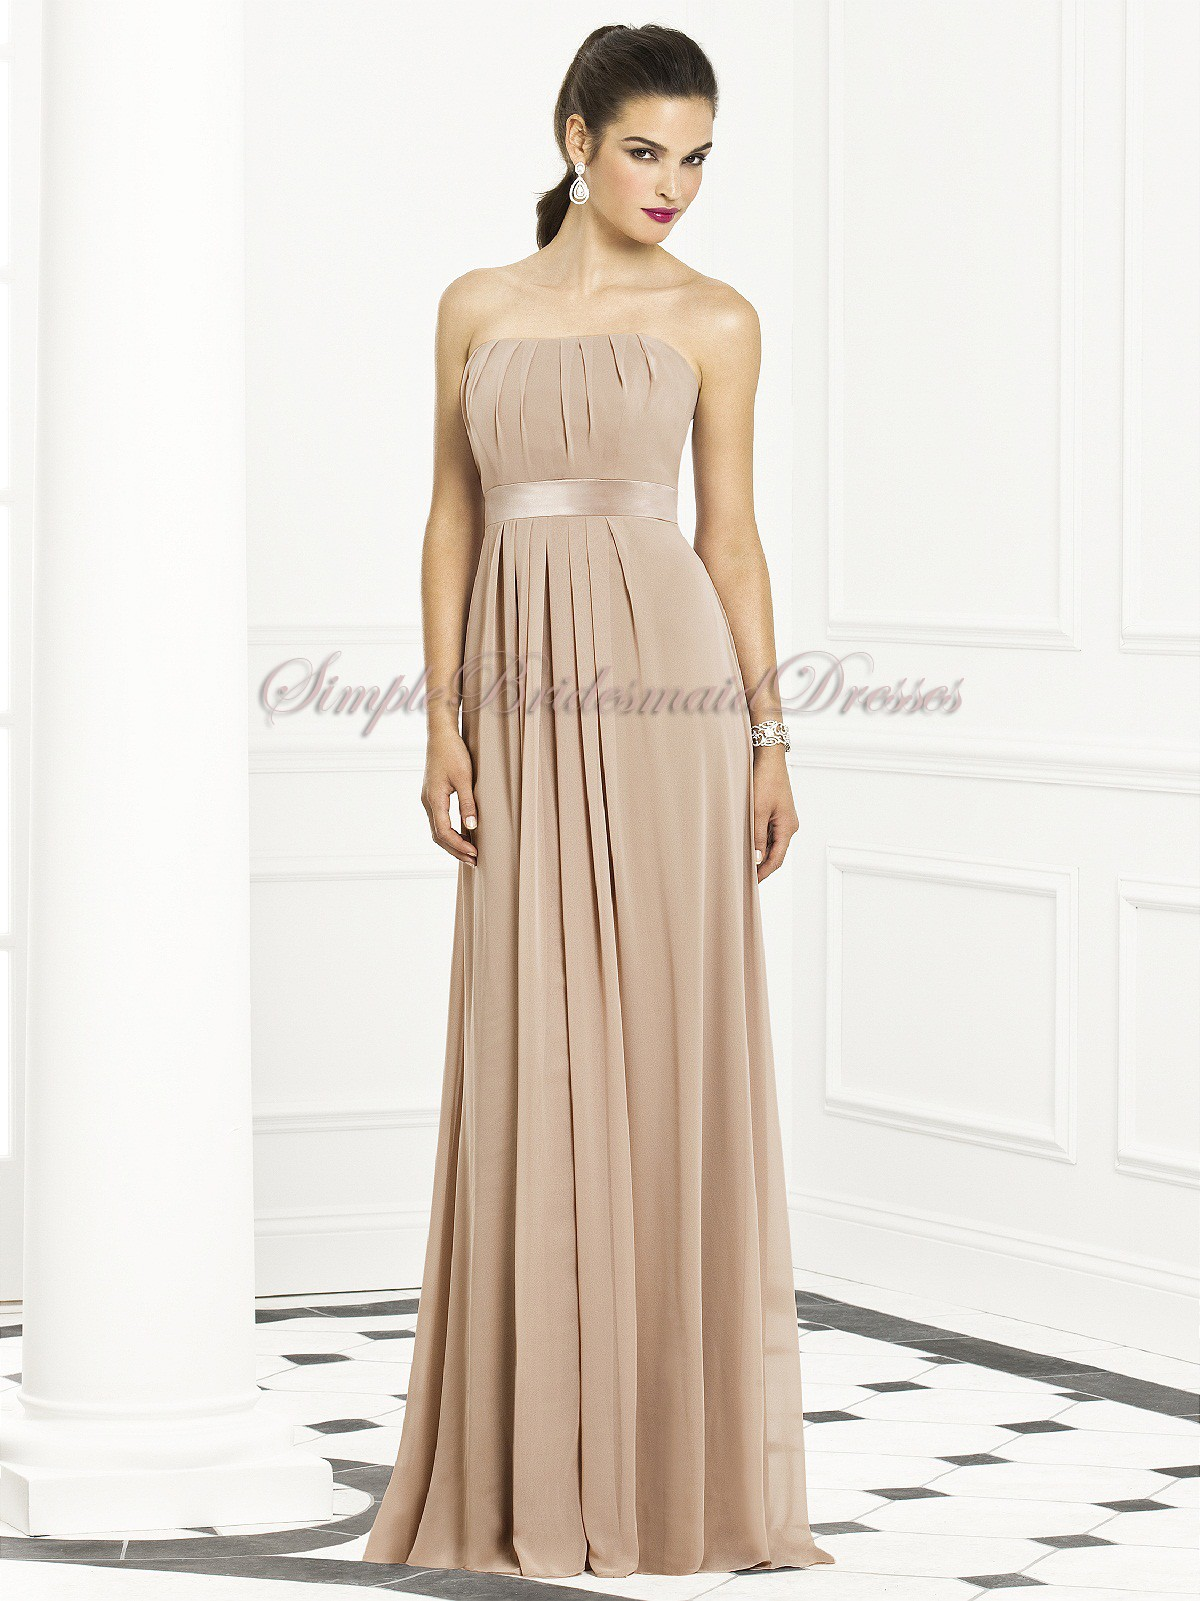 Champagne bridesmaid dresses uk cheap champagne bridesmaid zipper strapless empire sleeveless floor length a line drapedsash topaz chiffon champagne bridesmaid dress ombrellifo Choice Image